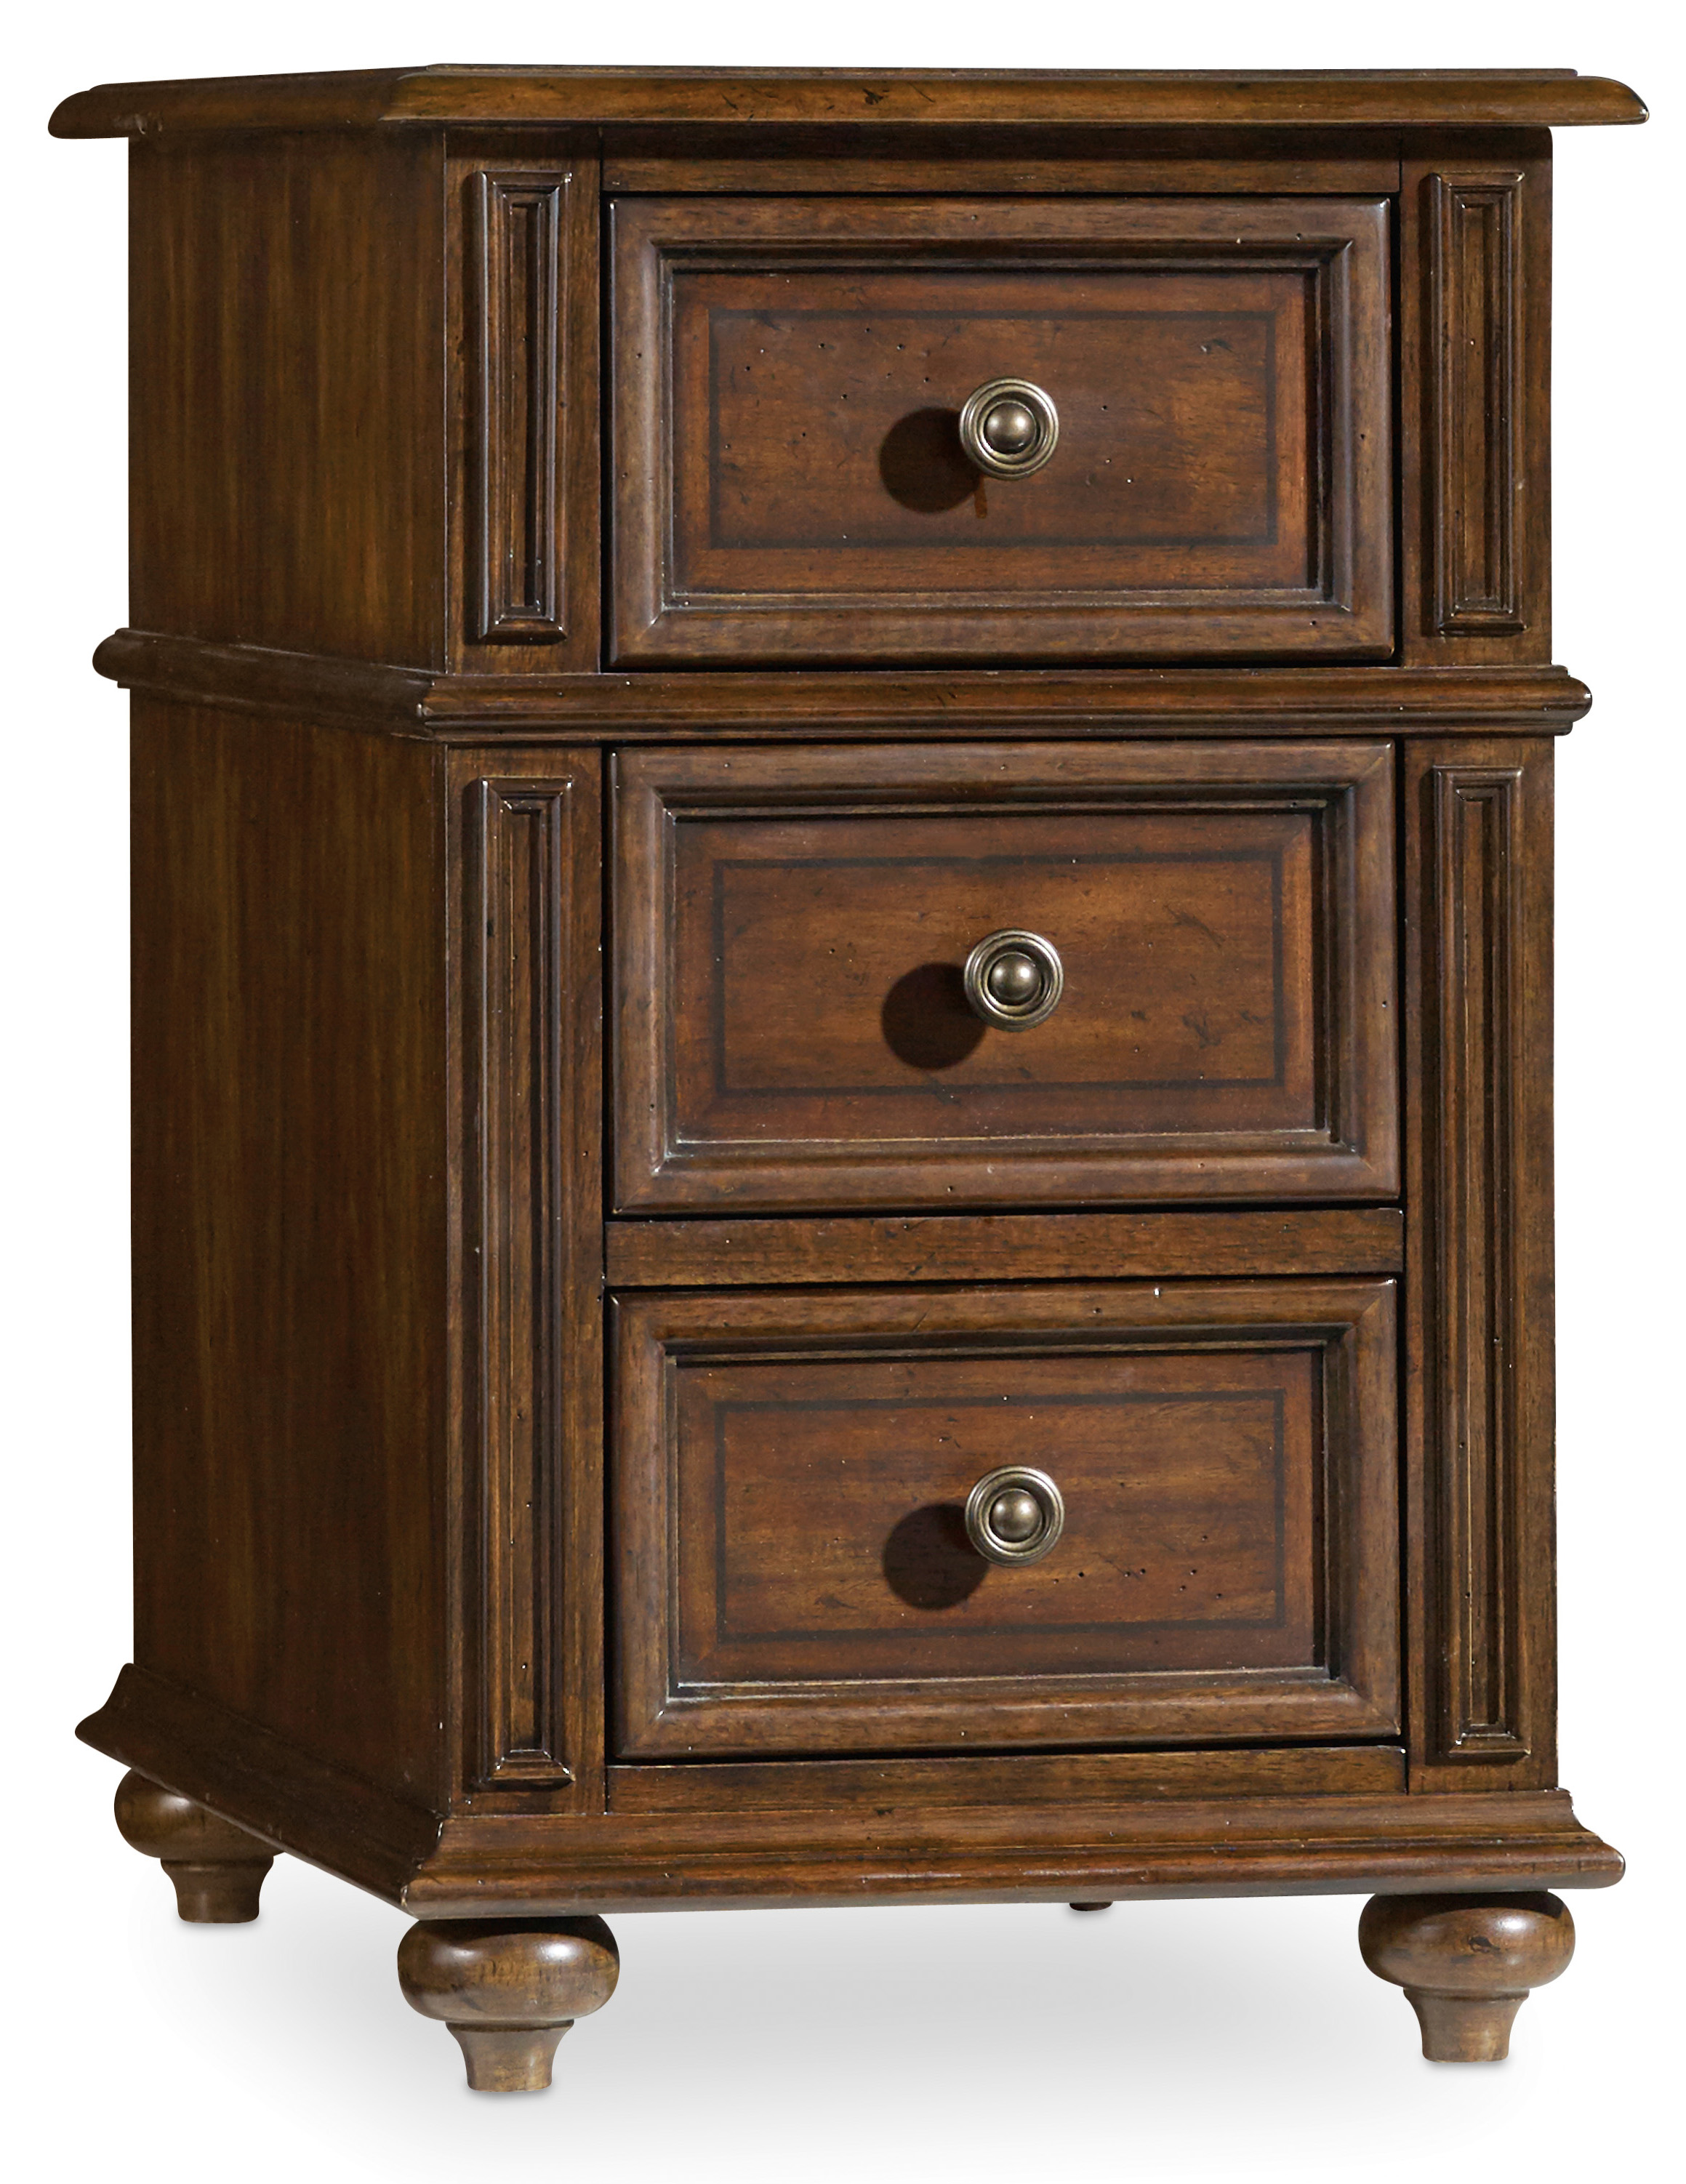 Hooker Furniture Leesburg Chairside Chest with 3 Drawers